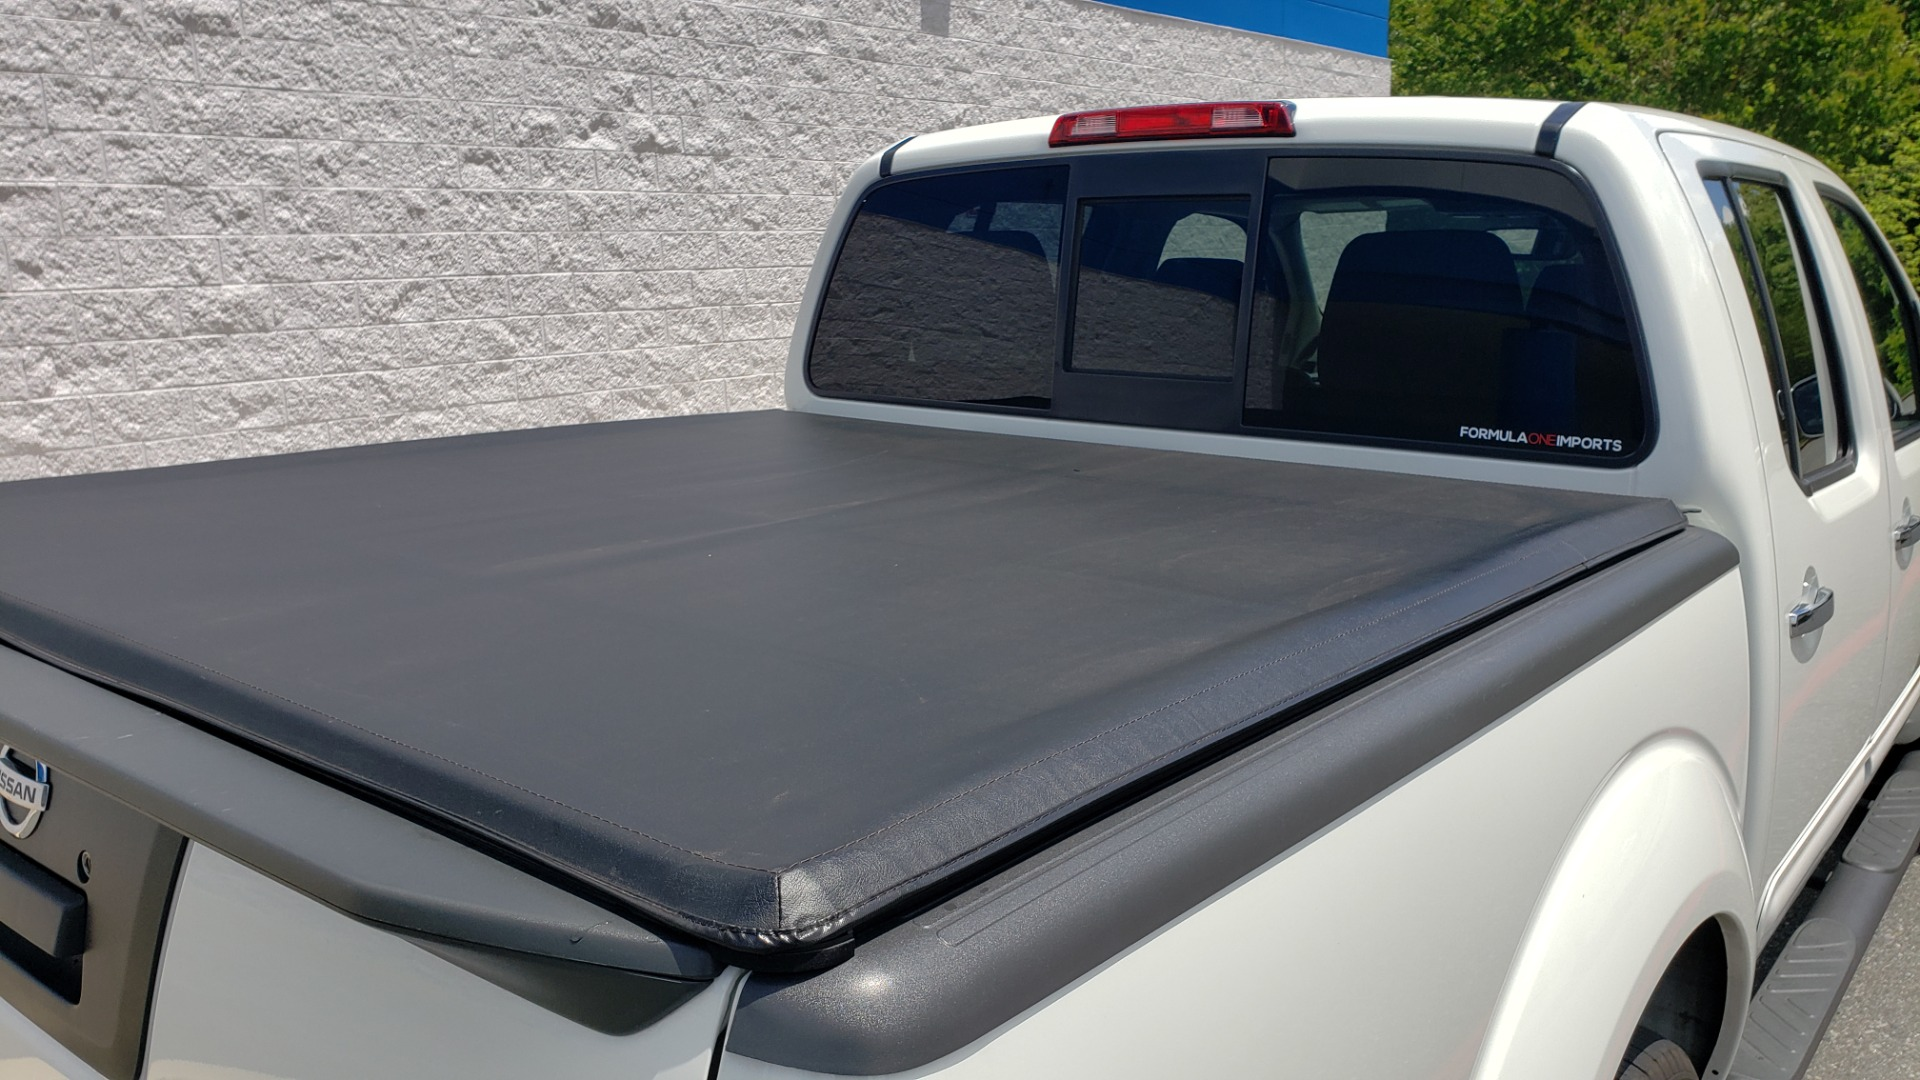 Used 2019 Nissan FRONTIER SL CREW CAB / 4X4 / NAV / SUNROOF / ROCKFORD FOSGATE / LOADED for sale $31,495 at Formula Imports in Charlotte NC 28227 16